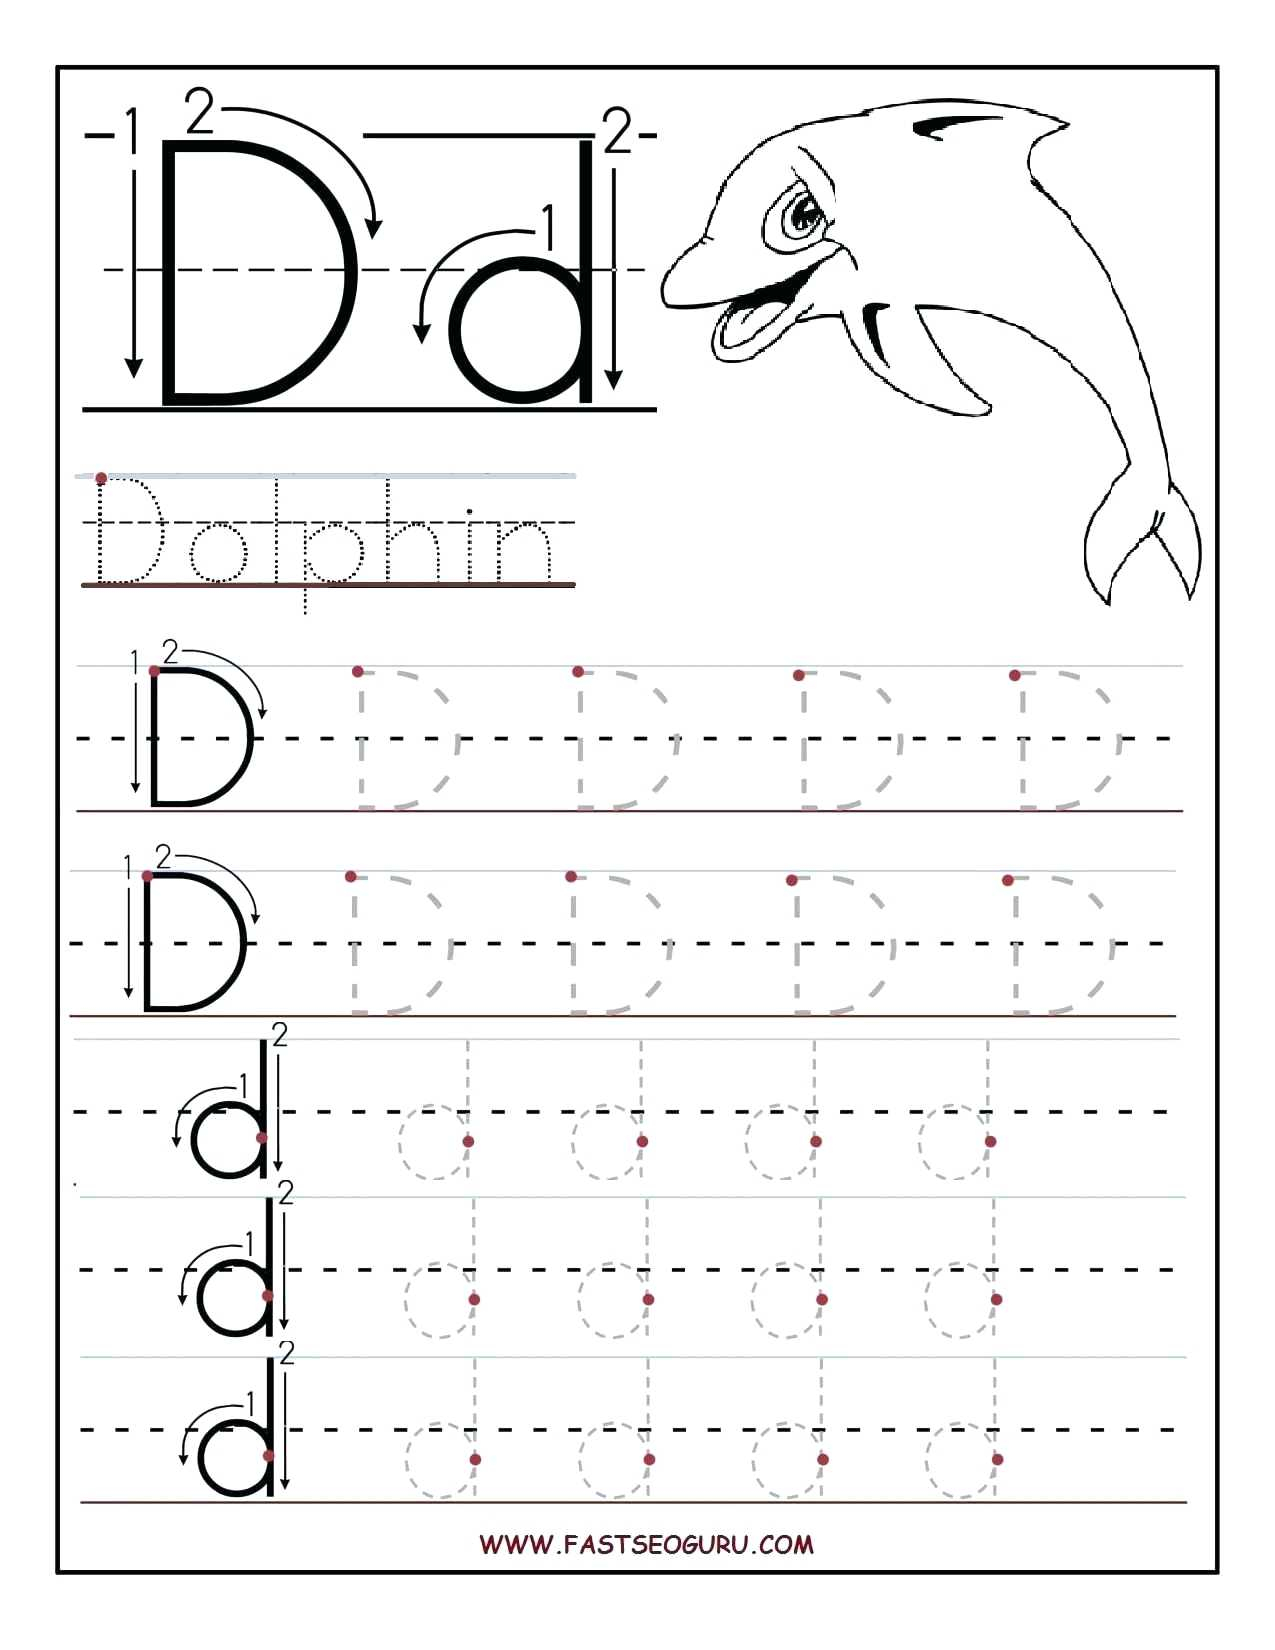 Abc Worksheets For 3 Year Olds | Printable Worksheets And